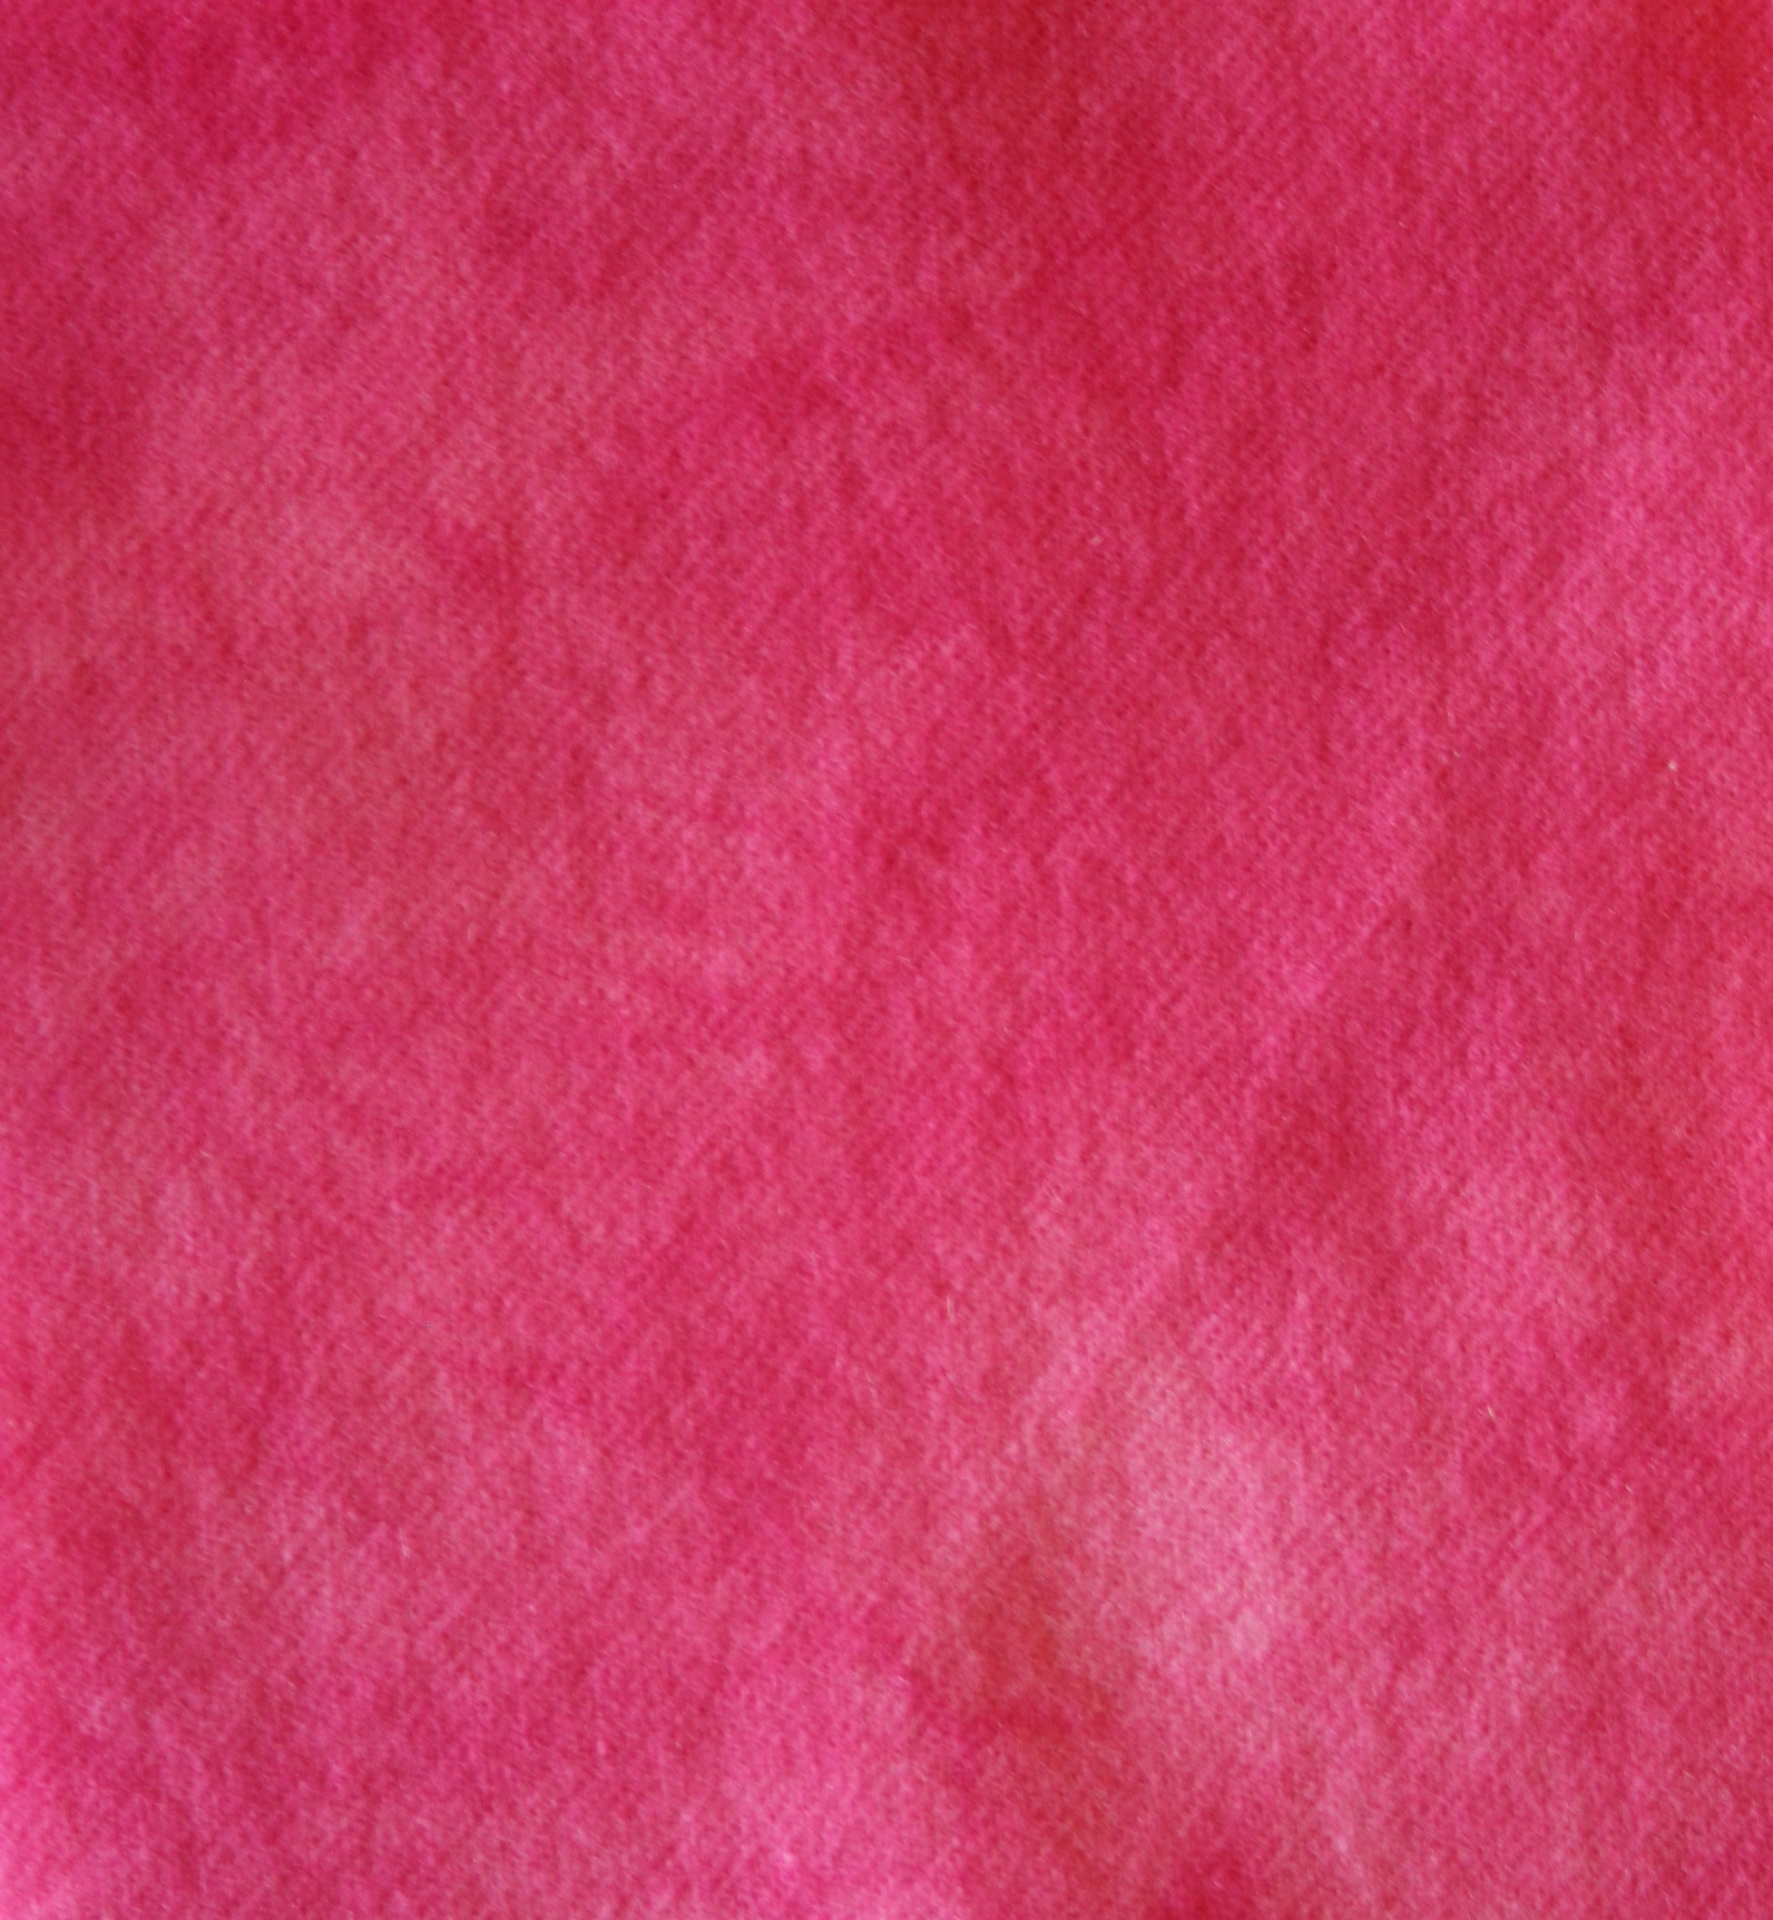 Hand Dyed 100% Wool Part of the Cotton Candy Collection